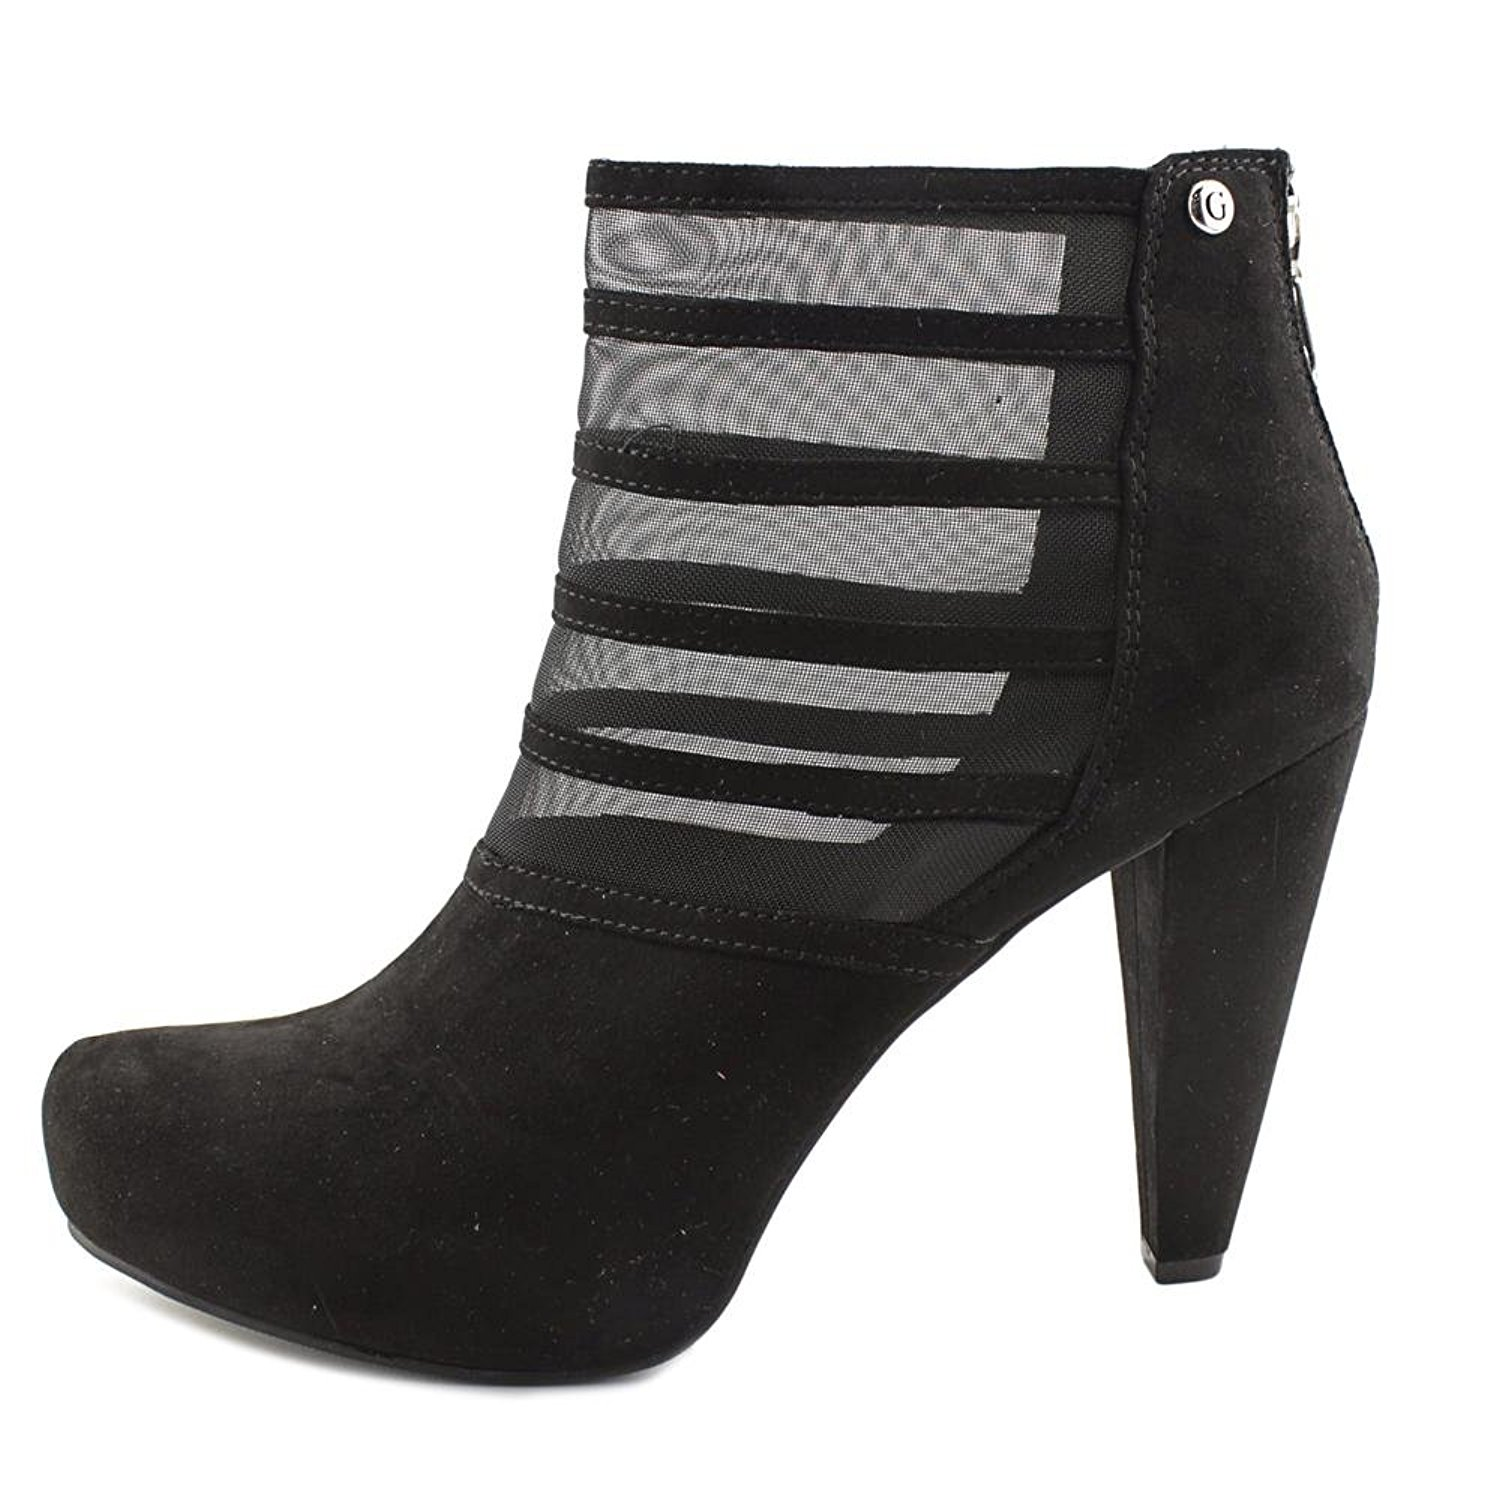 G by Guess Womens Talza Closed Toe Ankle Fashion Boots